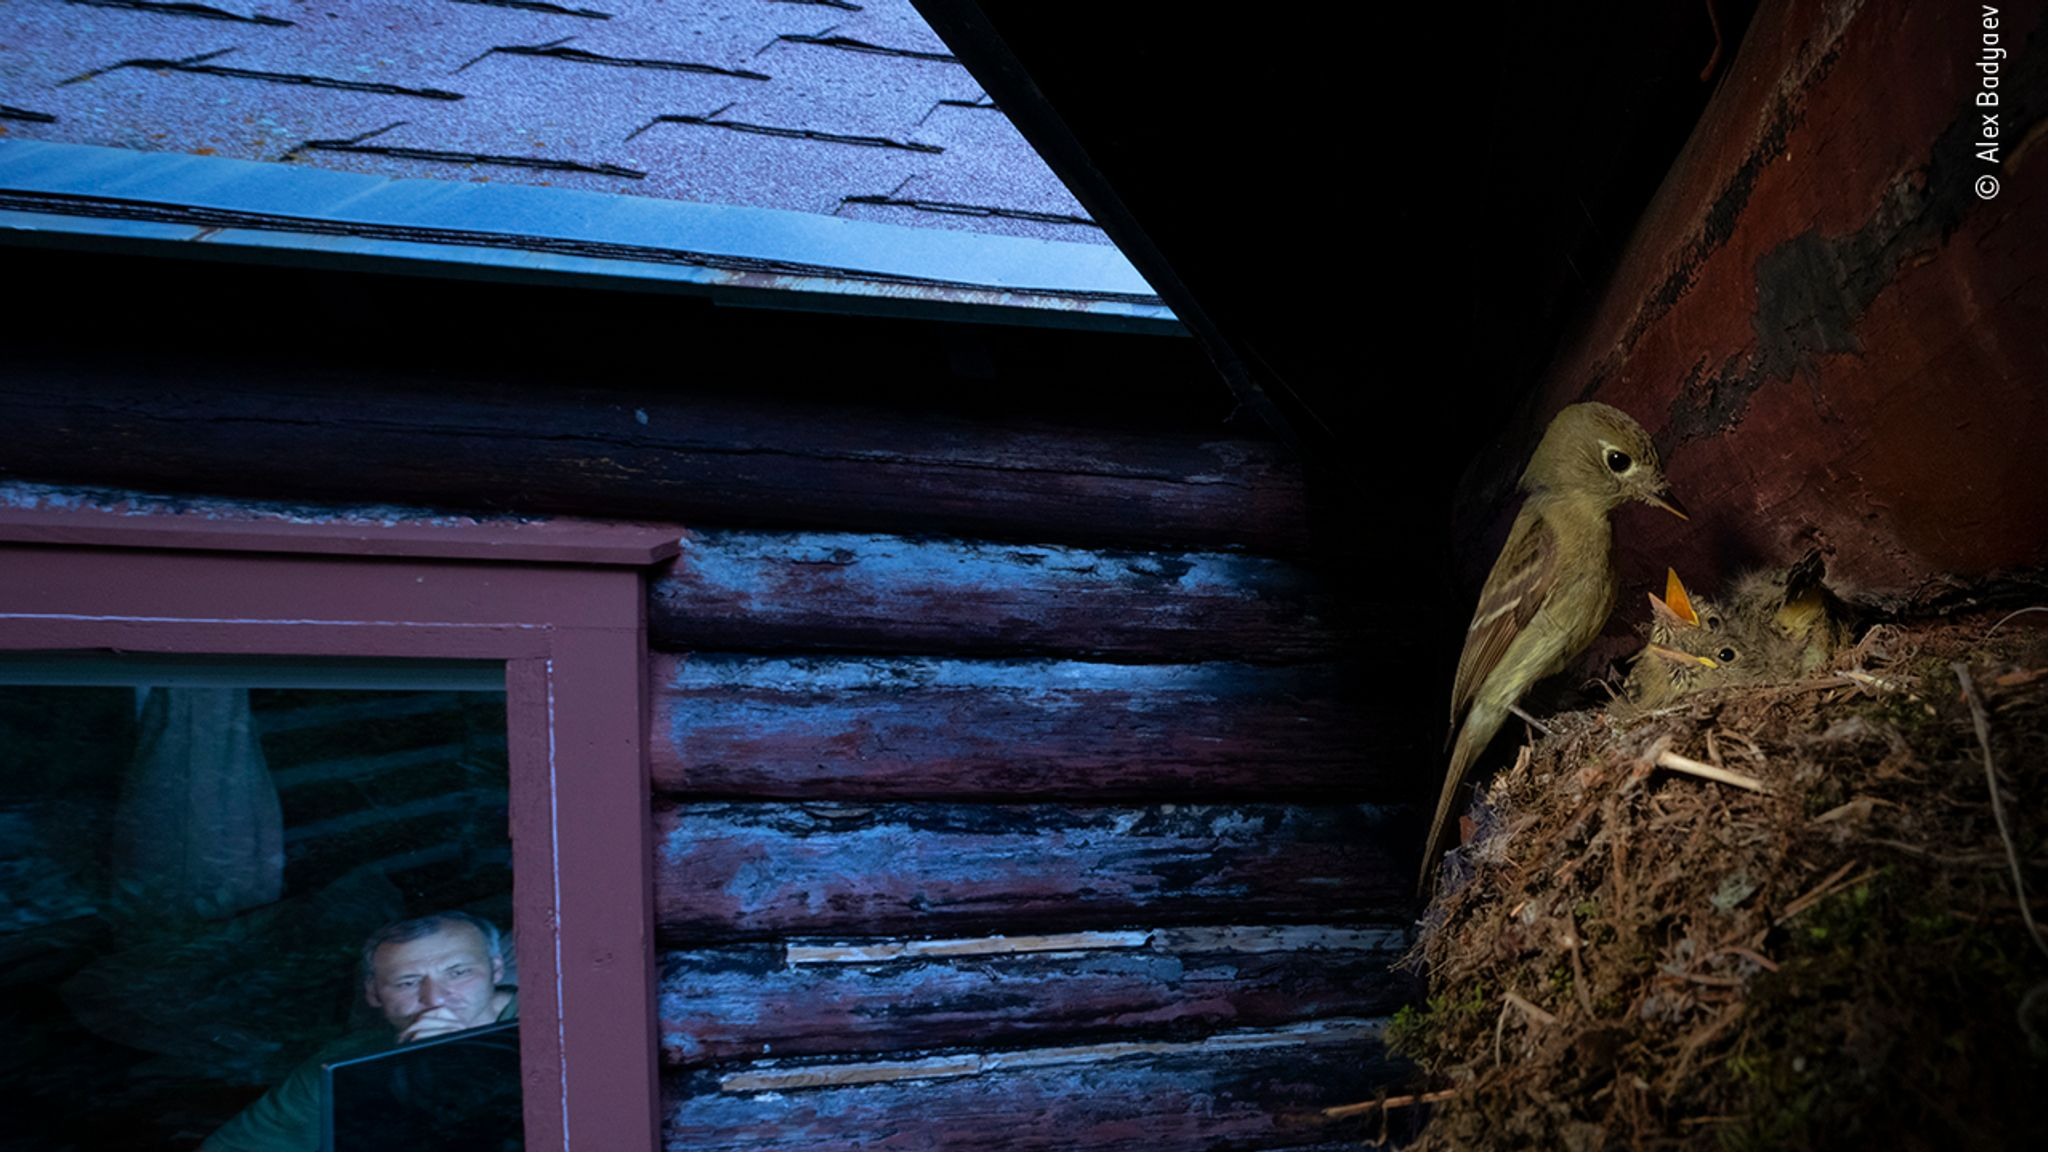 Cordilleran flycatcher pauses at its nest over the window of remote research cabin. This uncommon species is declining across much of North America, and here obviously prefers a cabin full of ornithologists studying the reasons for this recline... MUST CREDIT © Alex Badyaev/ Wildlife Photographer Of The Year 2020